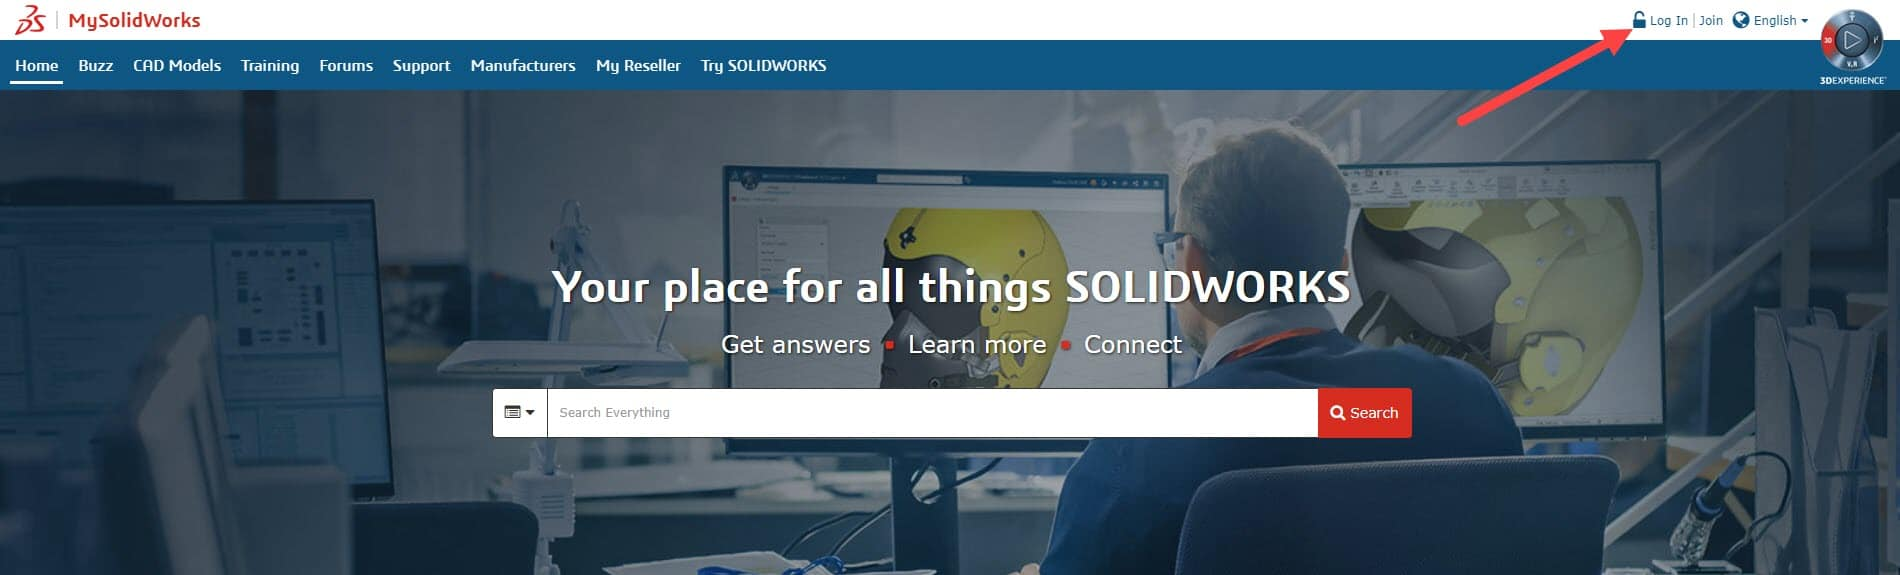 log in to my.solidworks portal